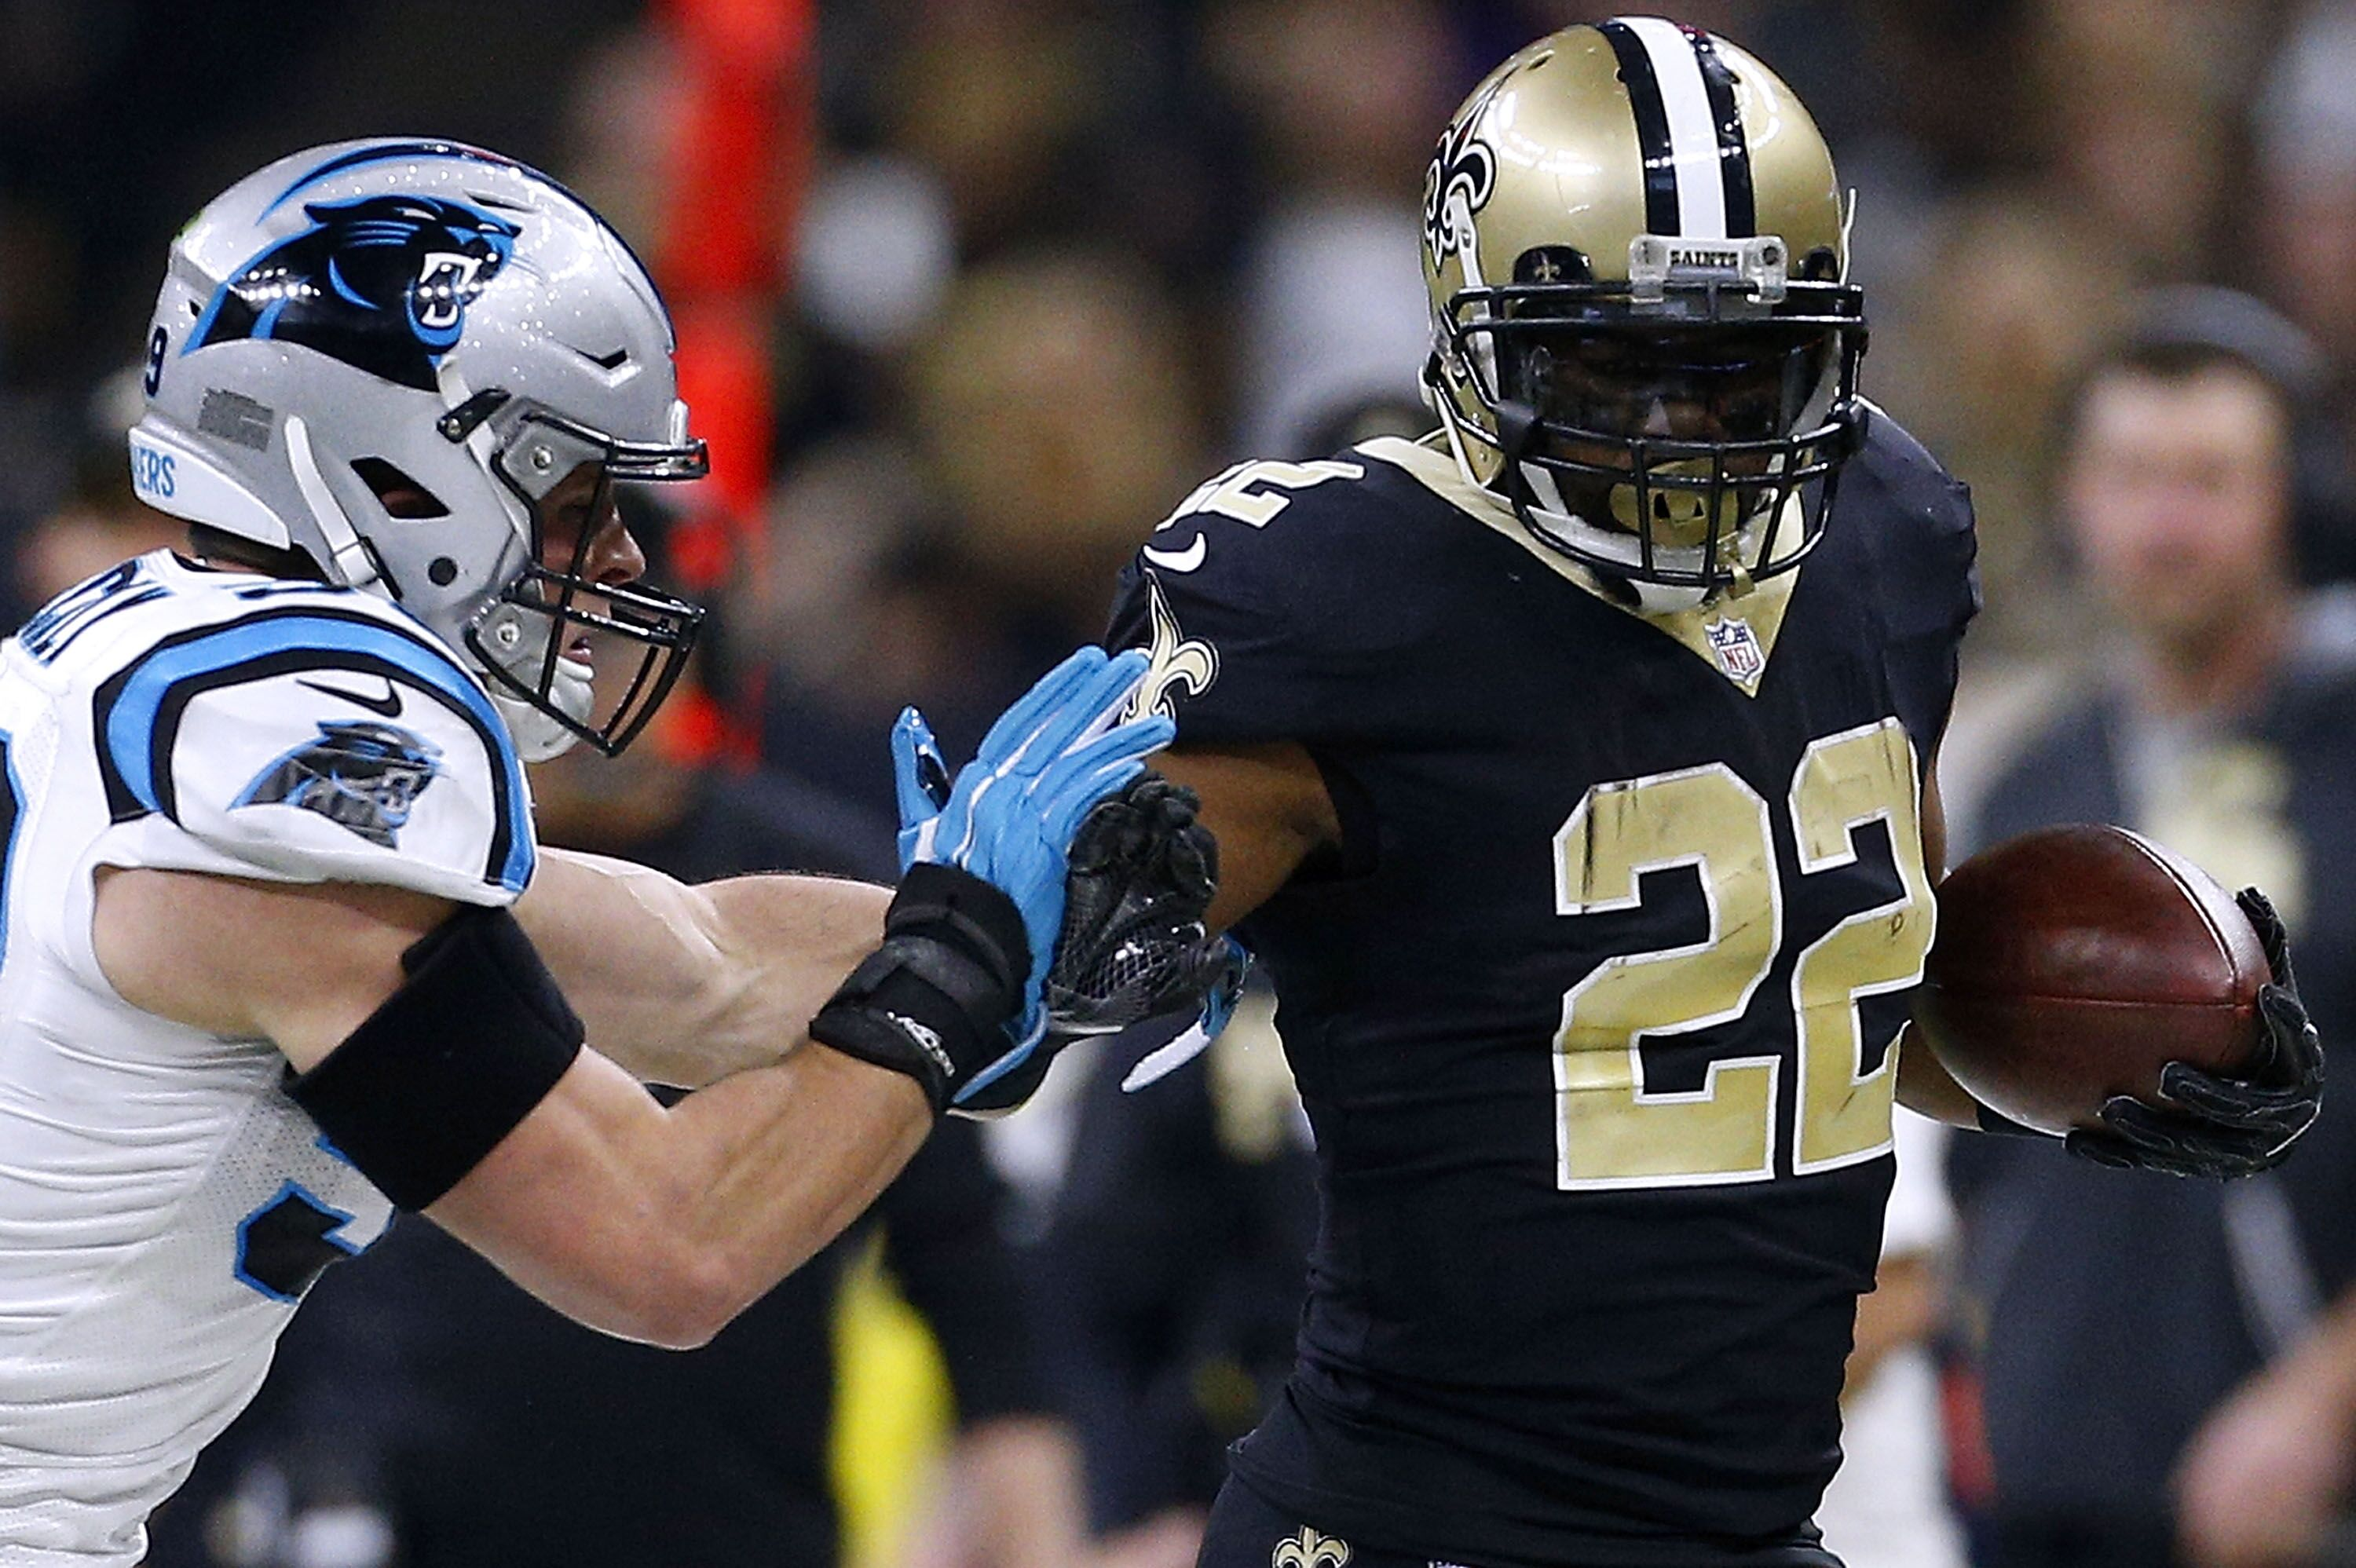 902327224-wild-card-round-carolina-panthers-v-new-orleans-saints.jpg